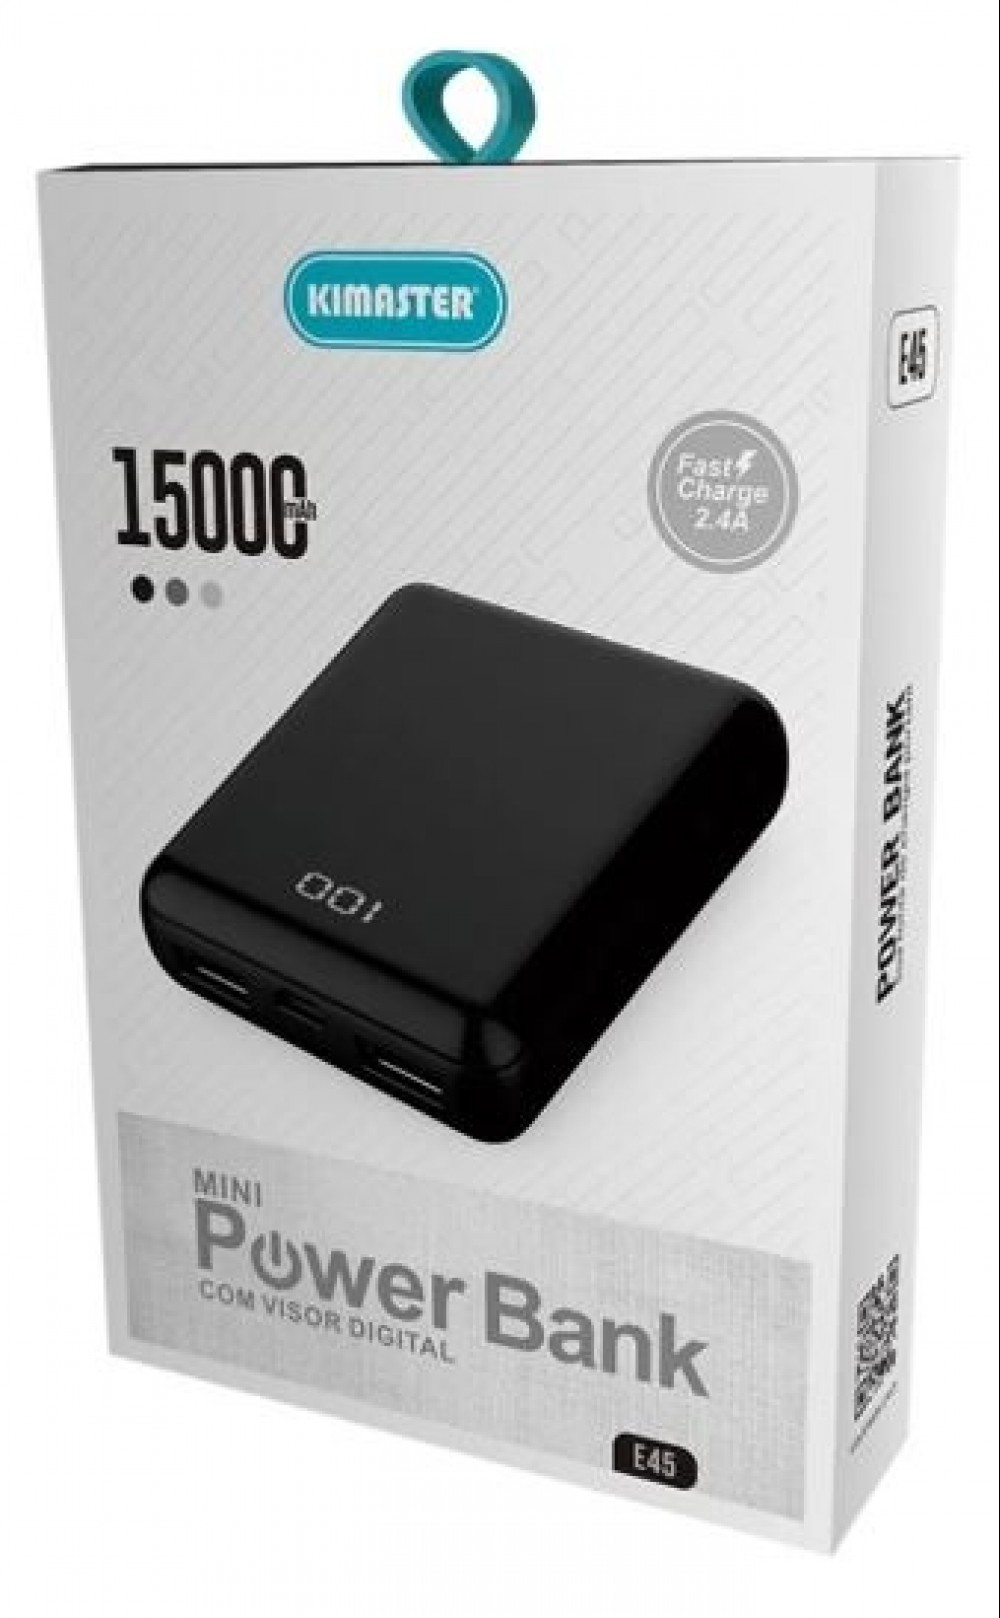 Power Bank Carregador Digital 15000mah Fast Charge Kimaster E45